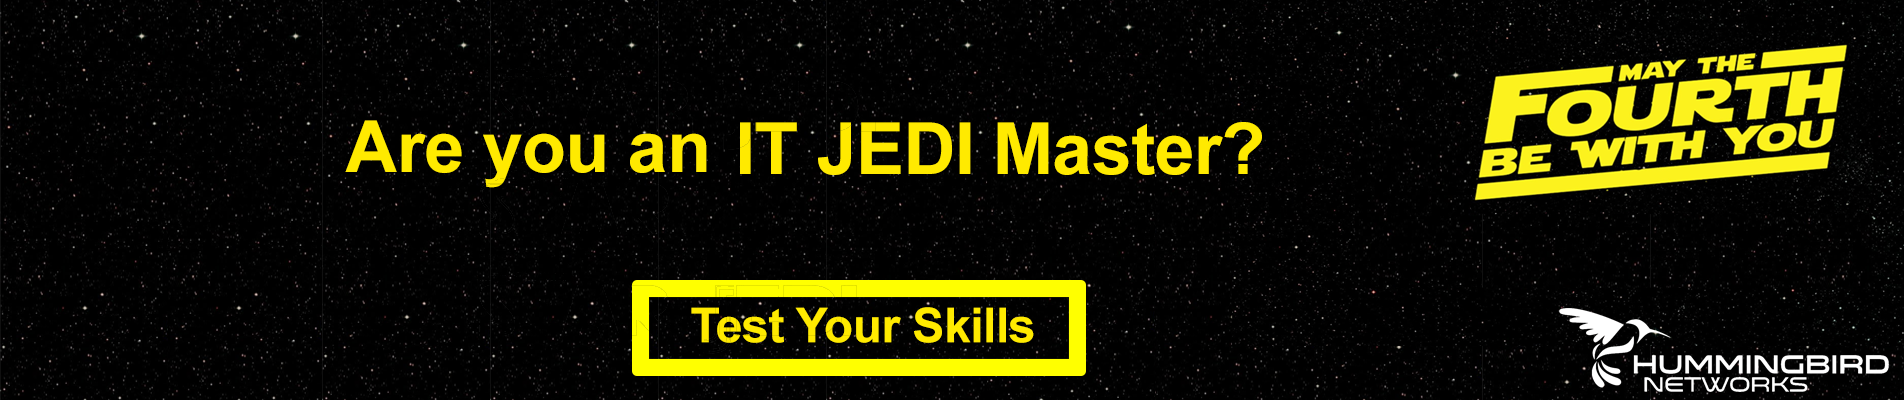 Are You An IT JEDI Master? Test Your Skills!